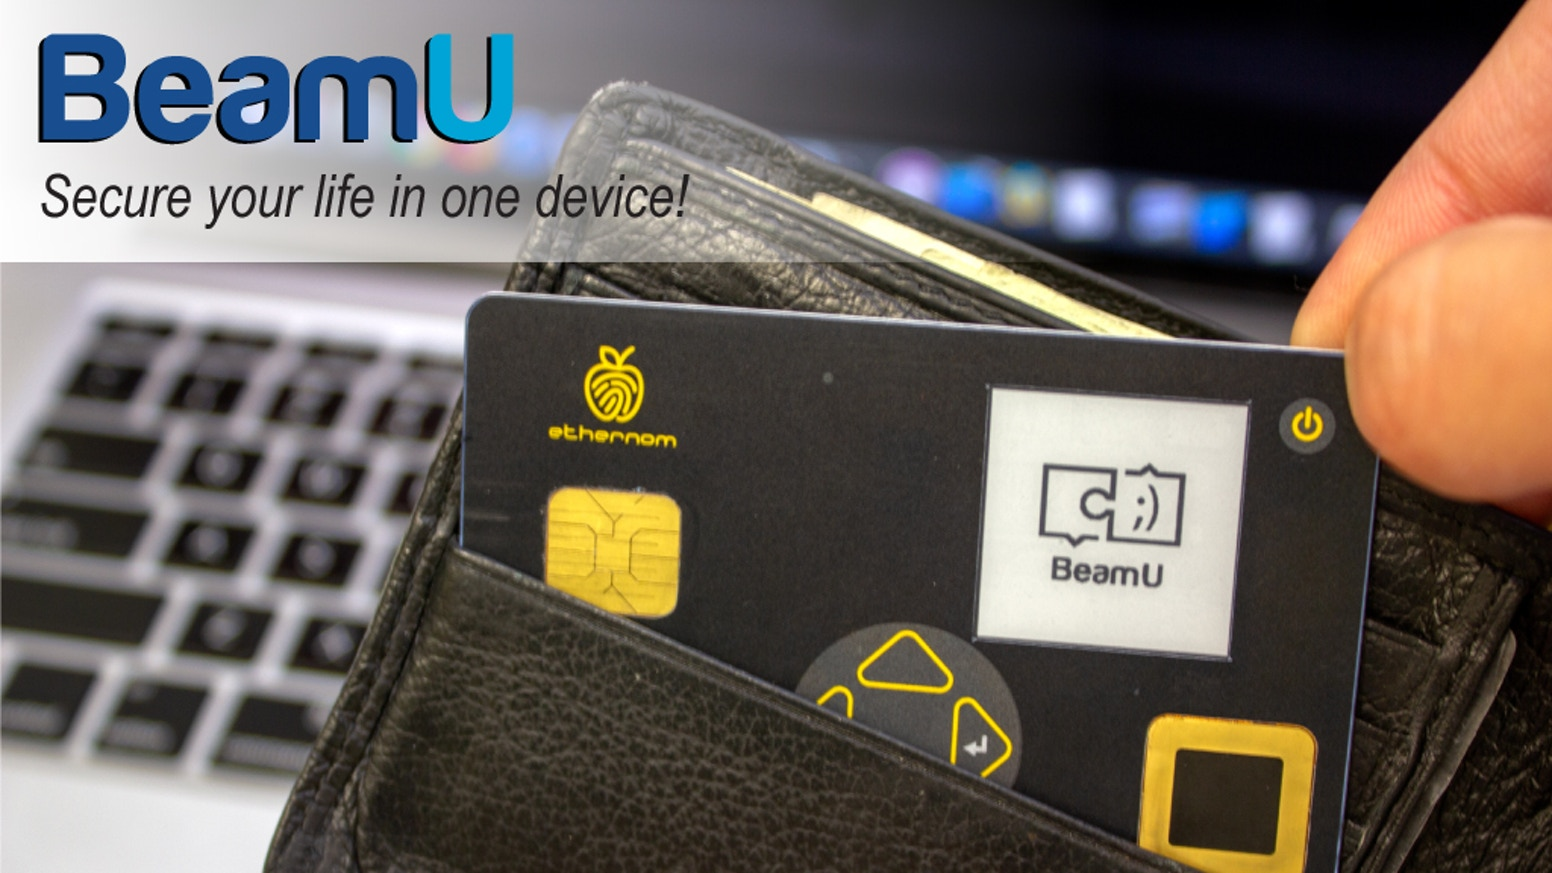 Take control of your digital life, passwords, personal data, and your physical valuables with BeamU.